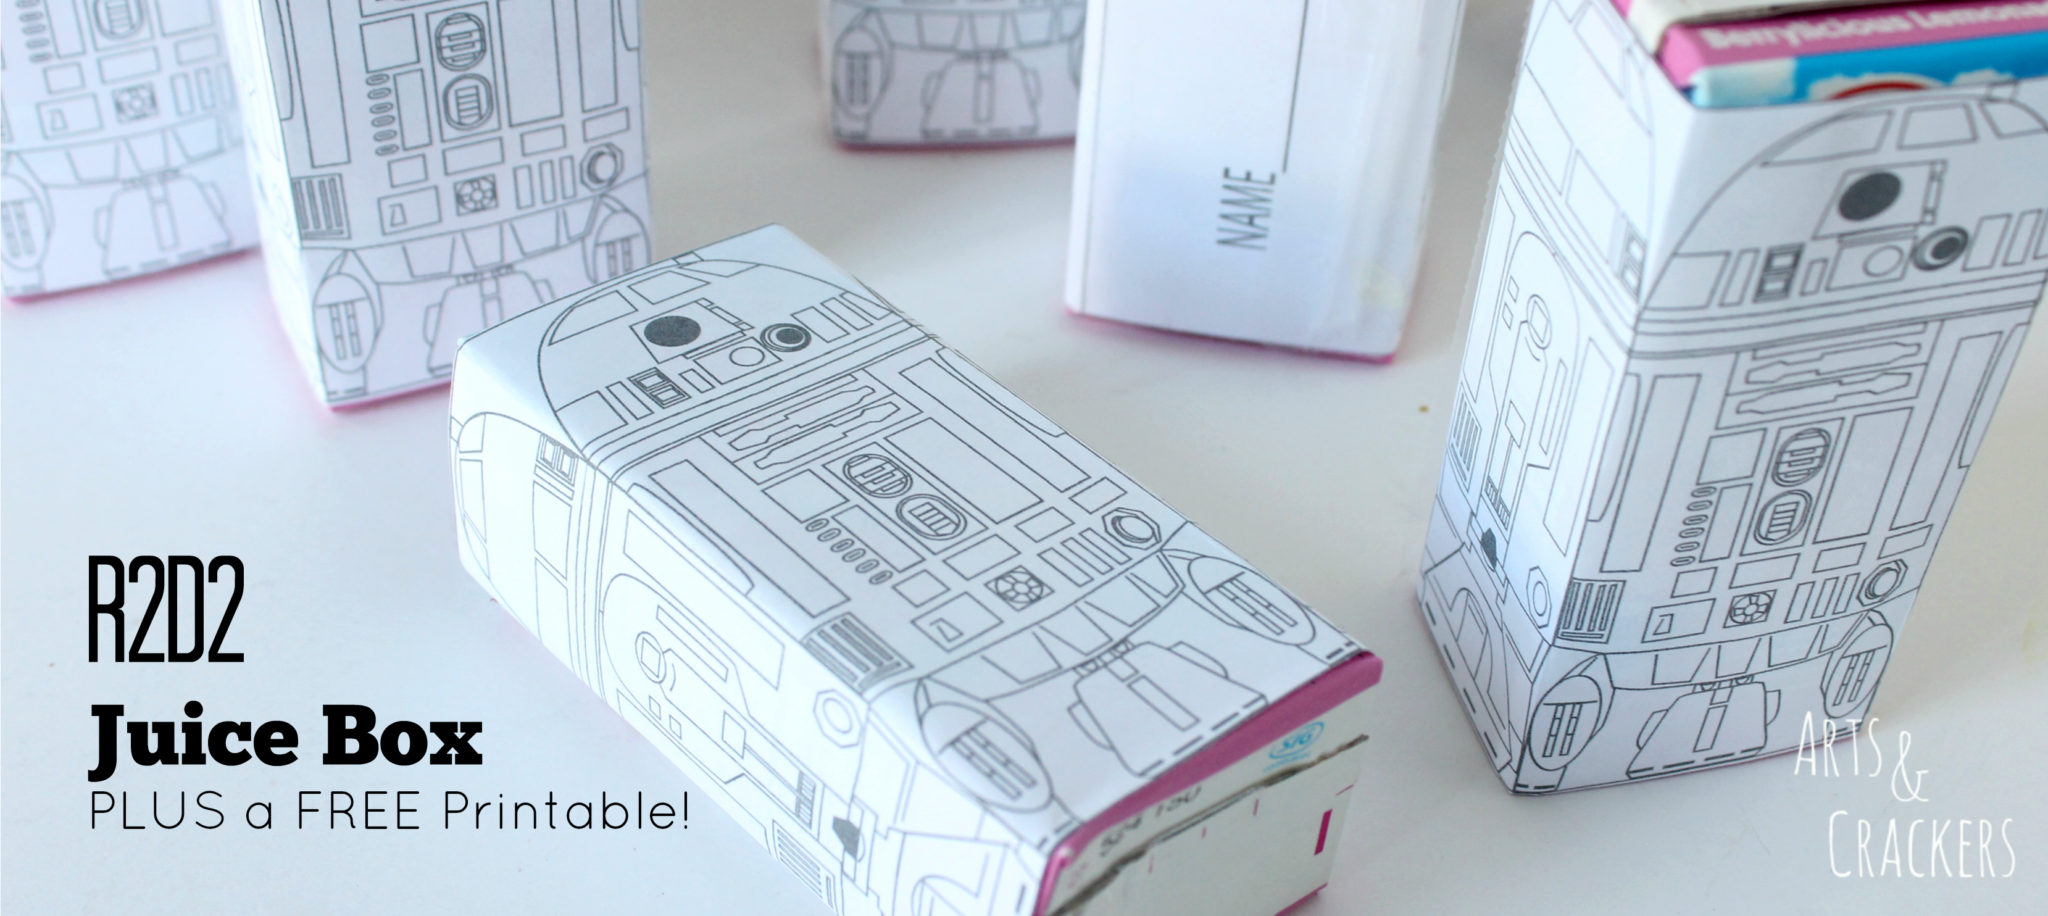 R2D2 Juice Boxes and FREE Printable